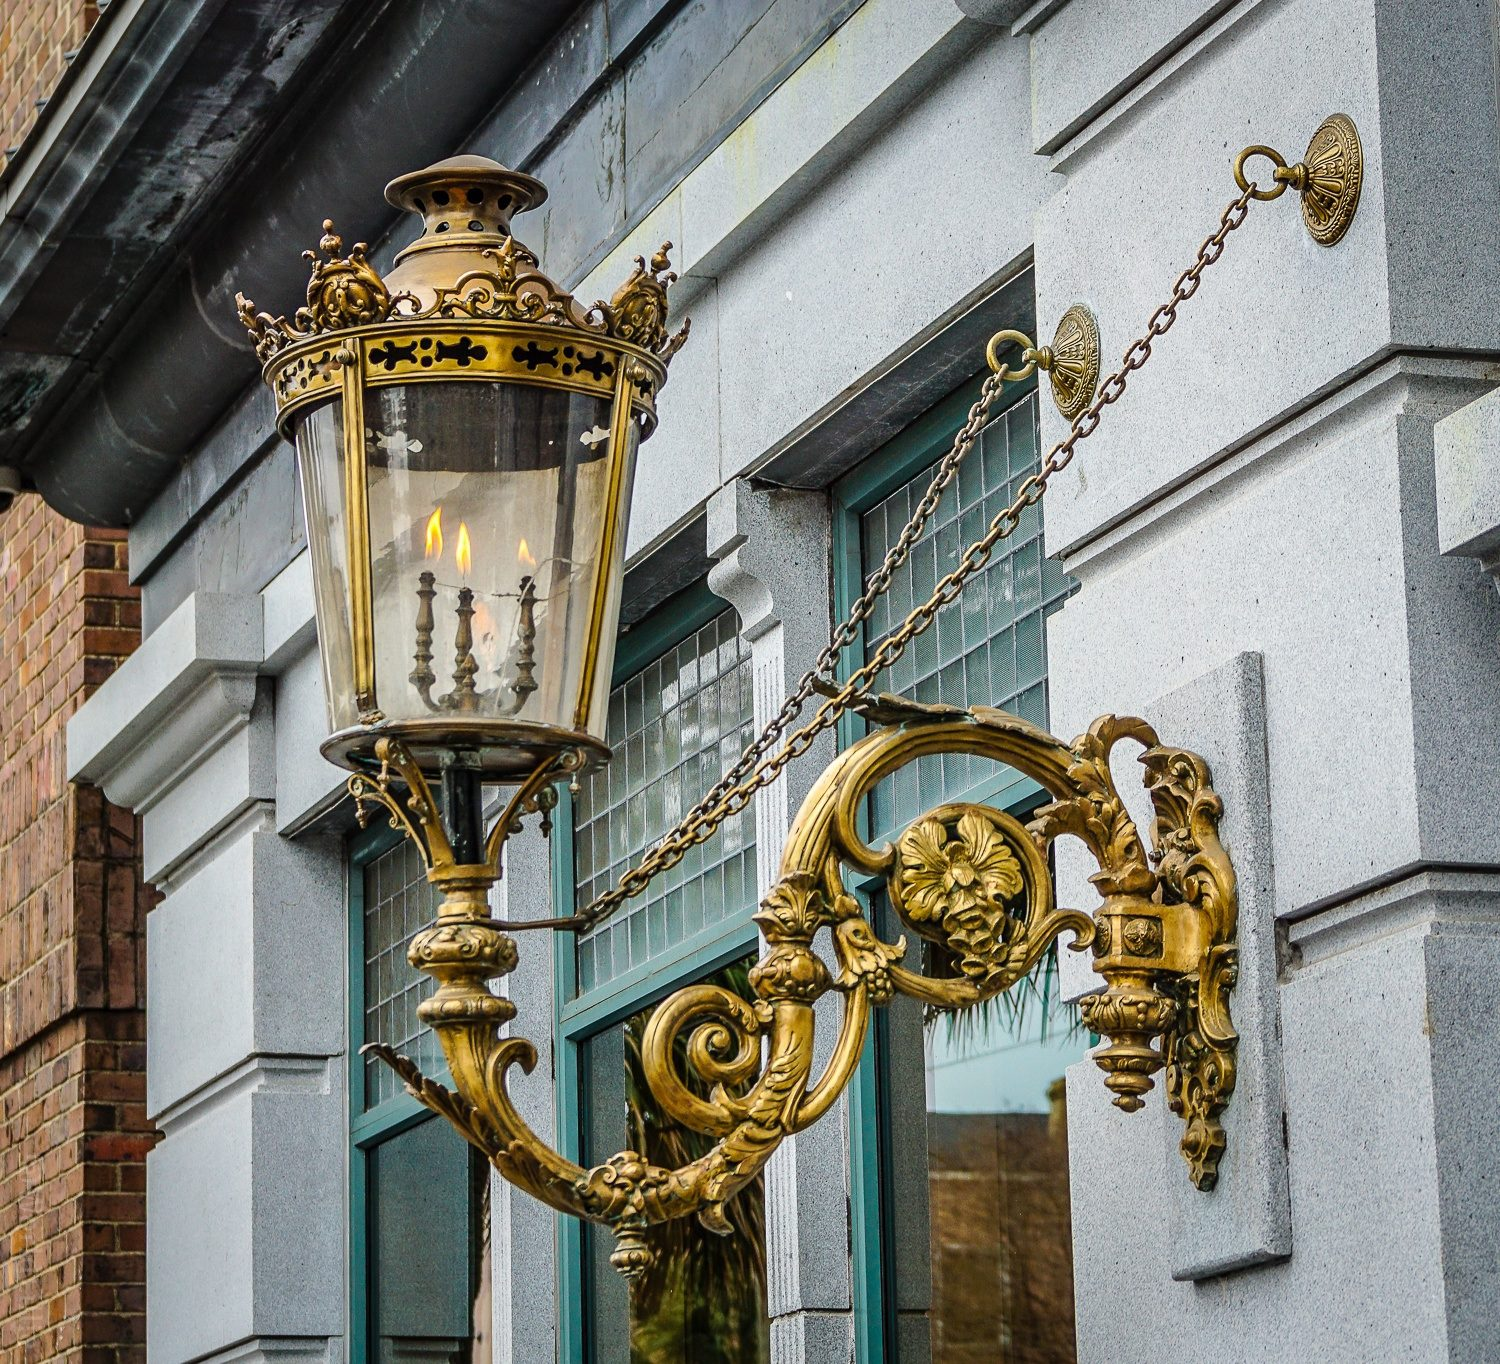 Gold and ornate lamp-holder.